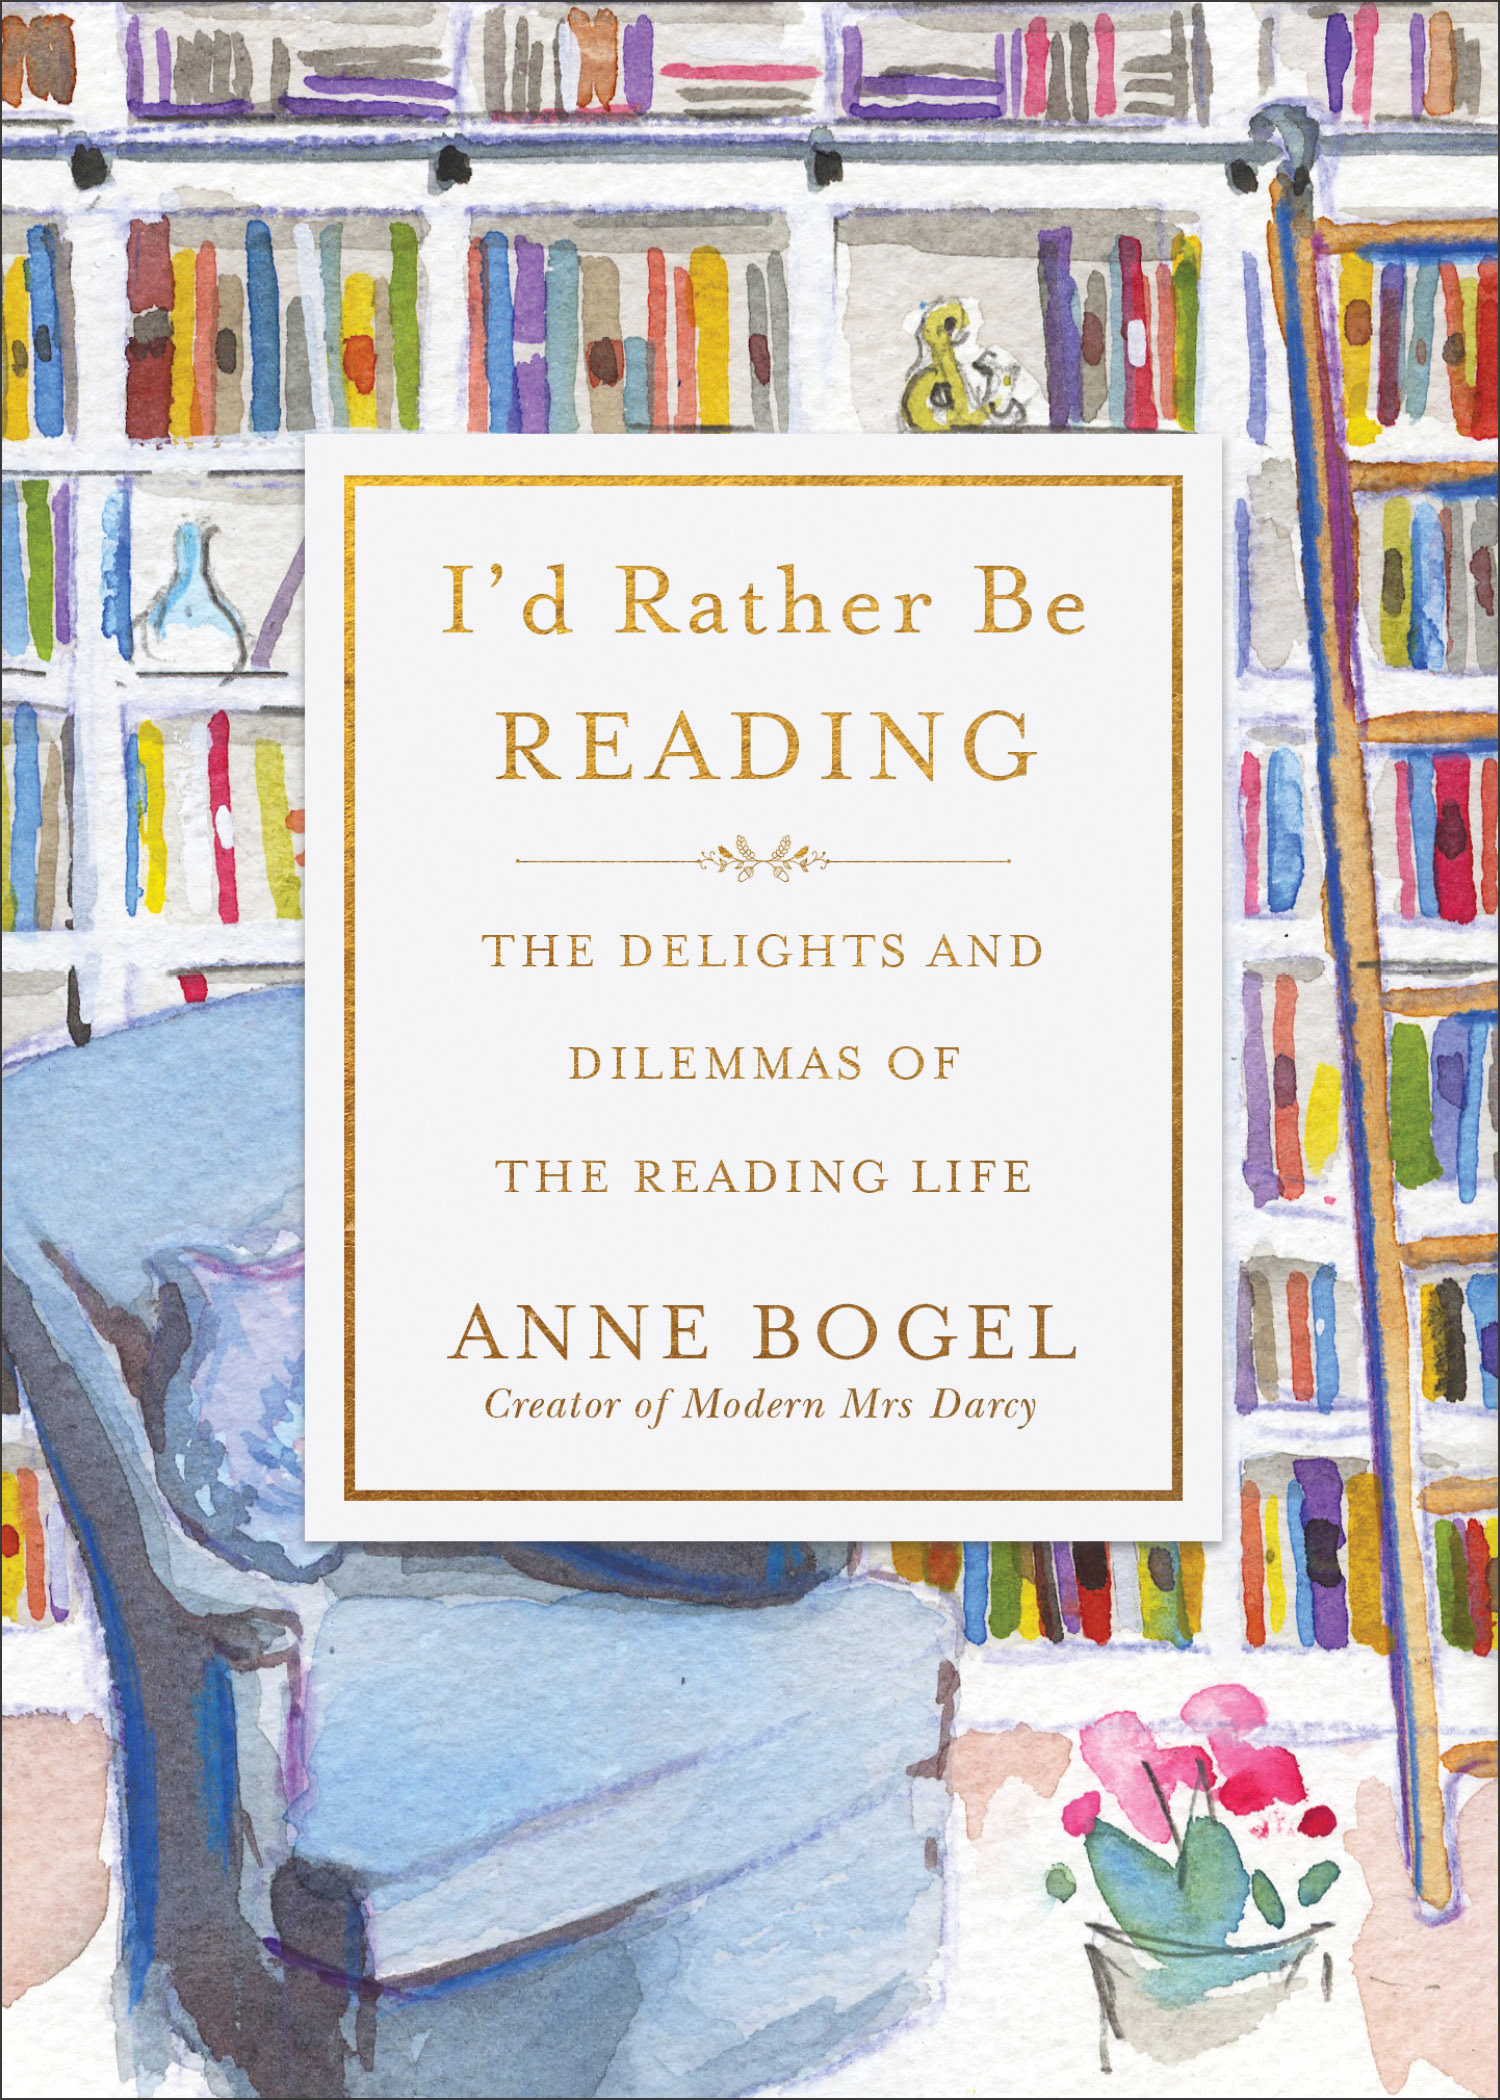 I'd Rather Be Reading: The Delights and Dilemmas of the Reading Life by Anne Bogel, ISBN: 9780801072925